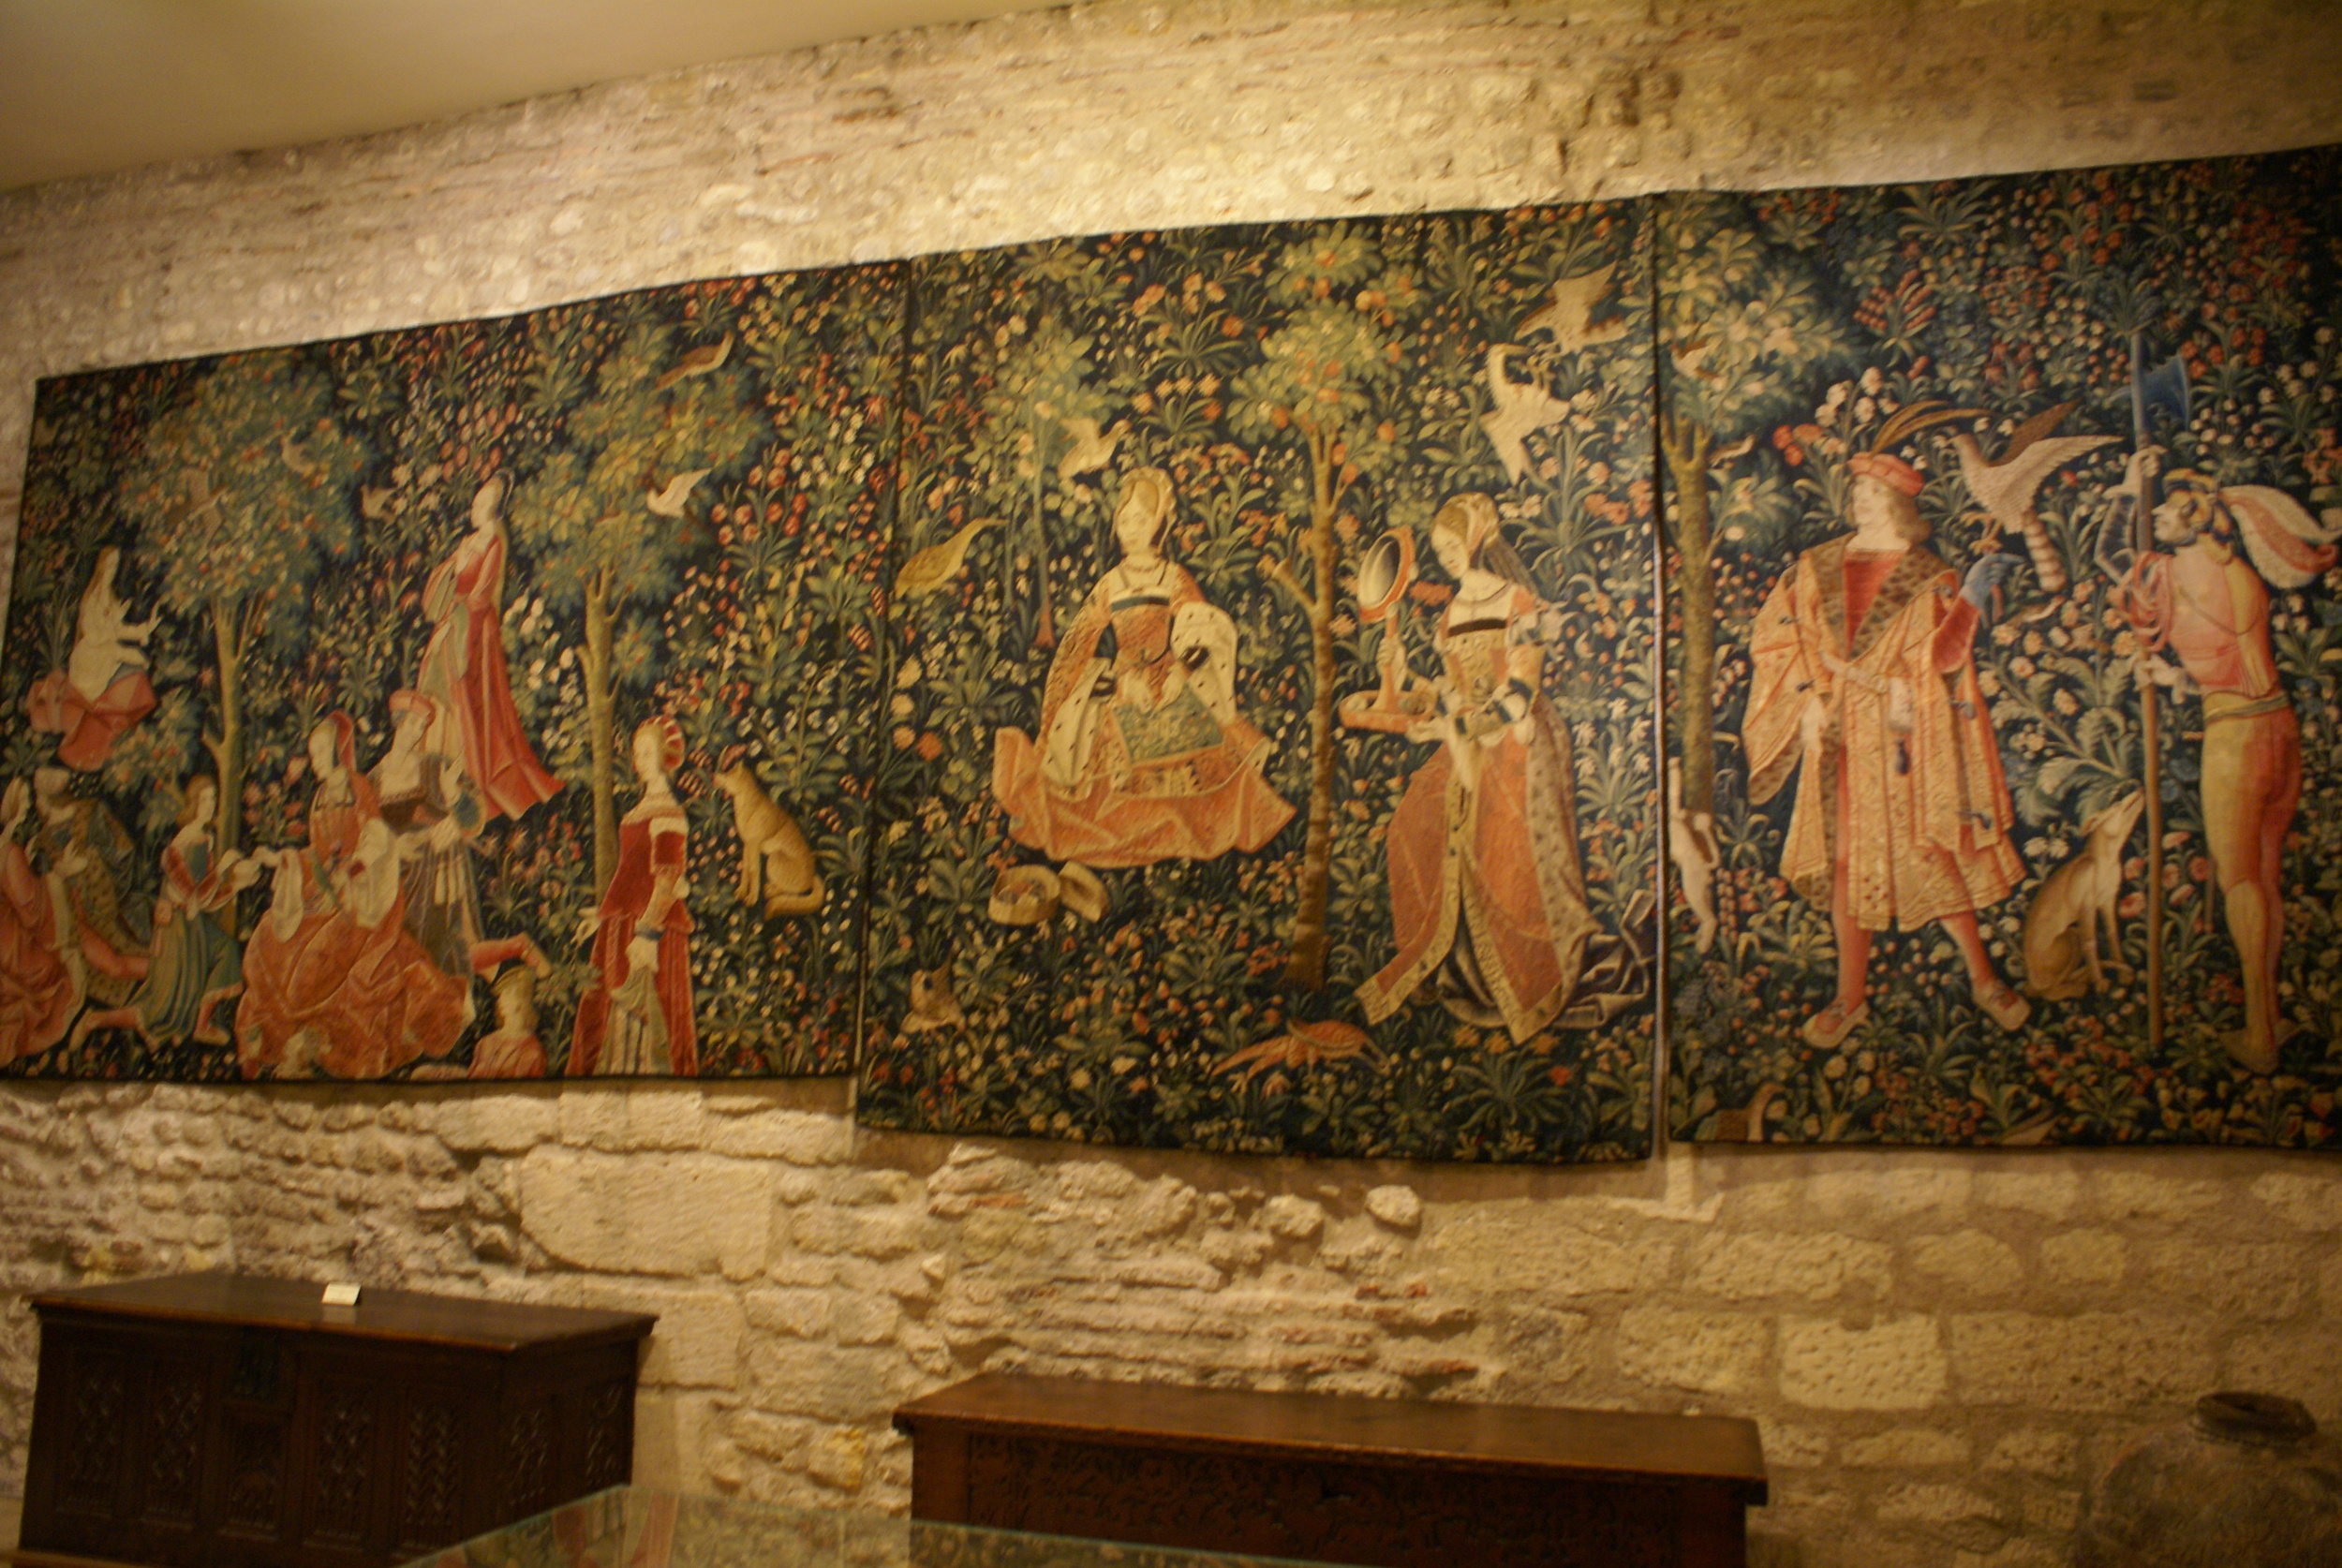 The Stately life, set of 6 tapestries in the Cluny